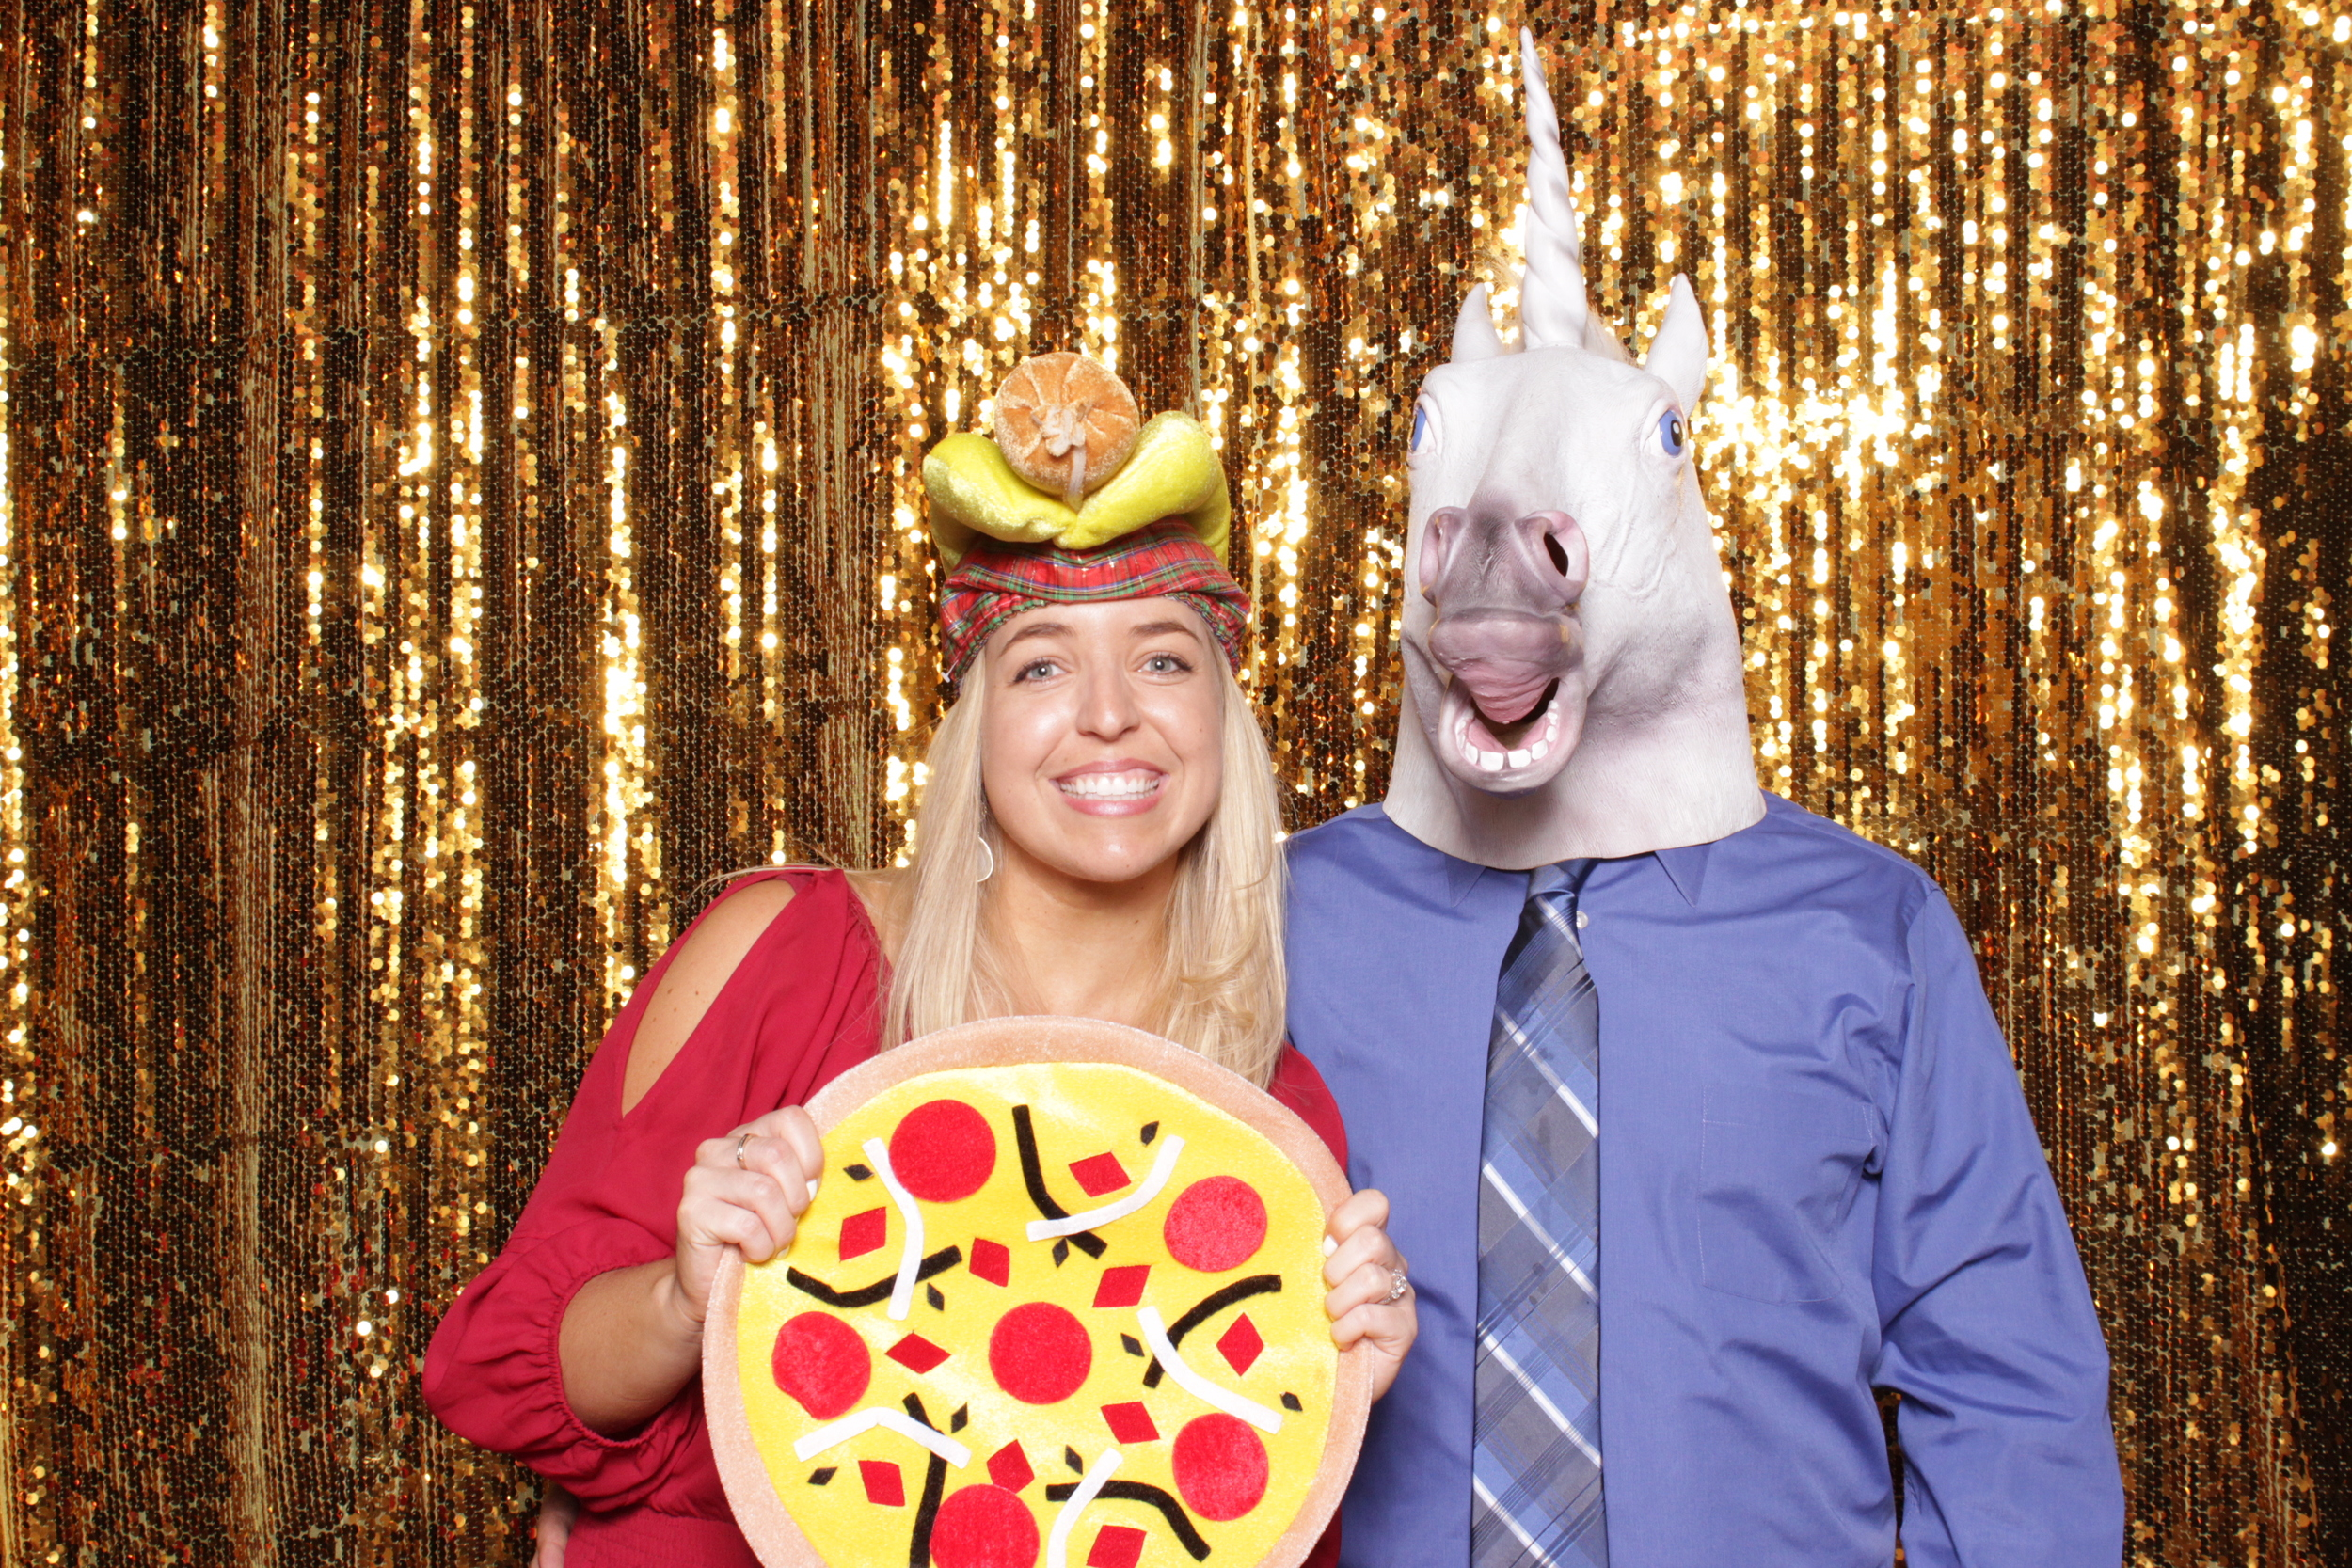 pizza-prop-photo-booth-sequins